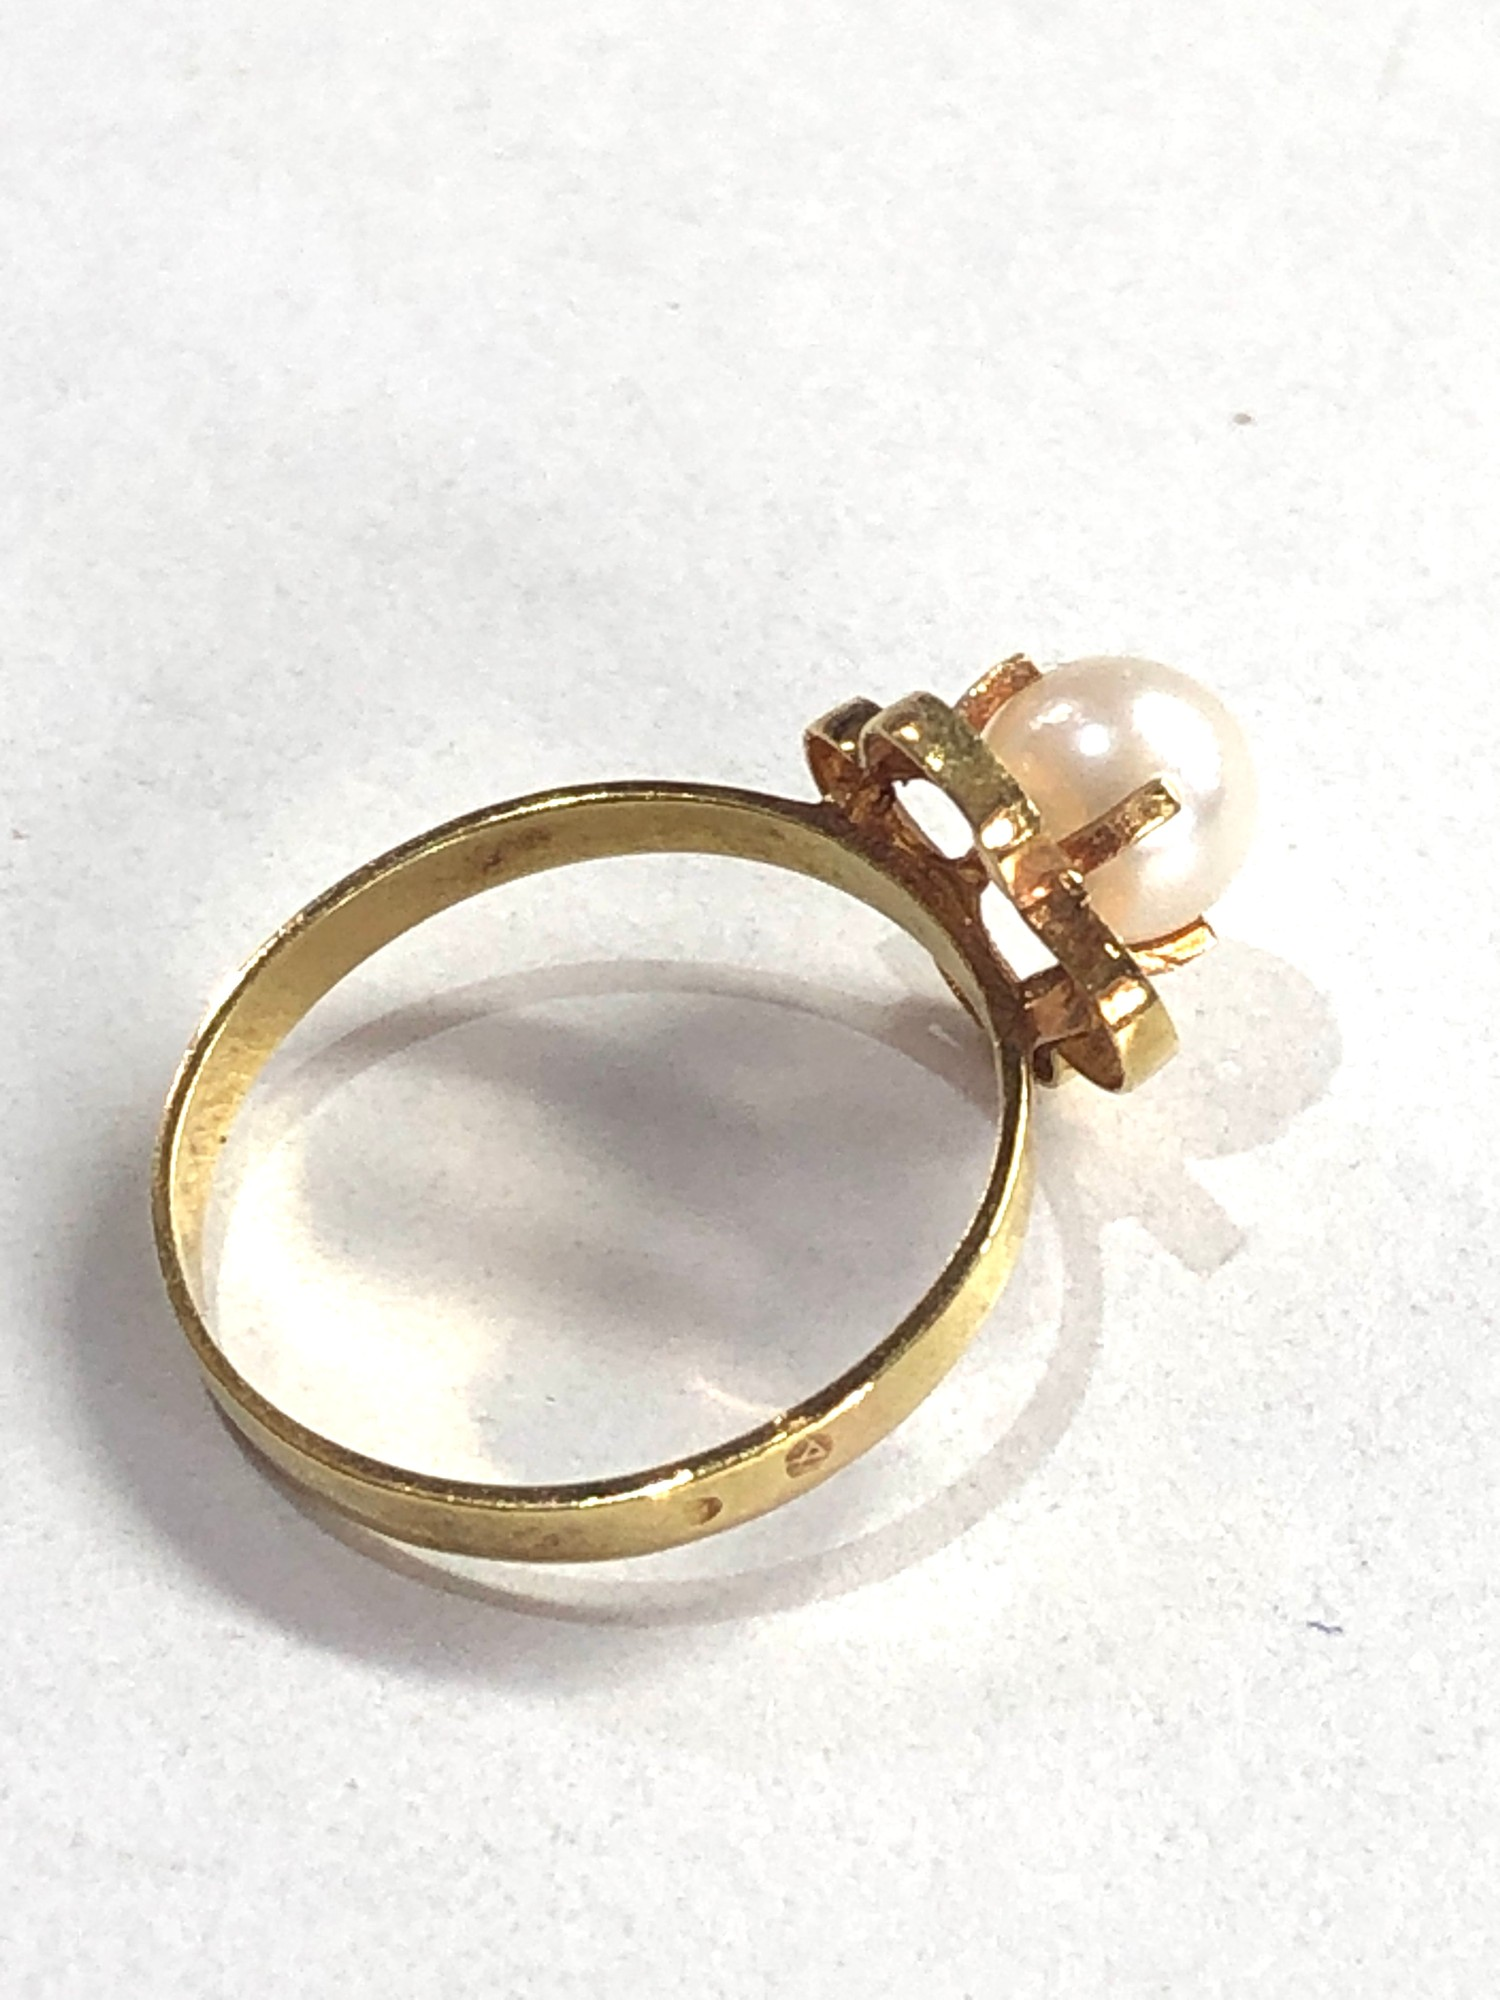 18ct pearl ring 1.7g - Image 2 of 3